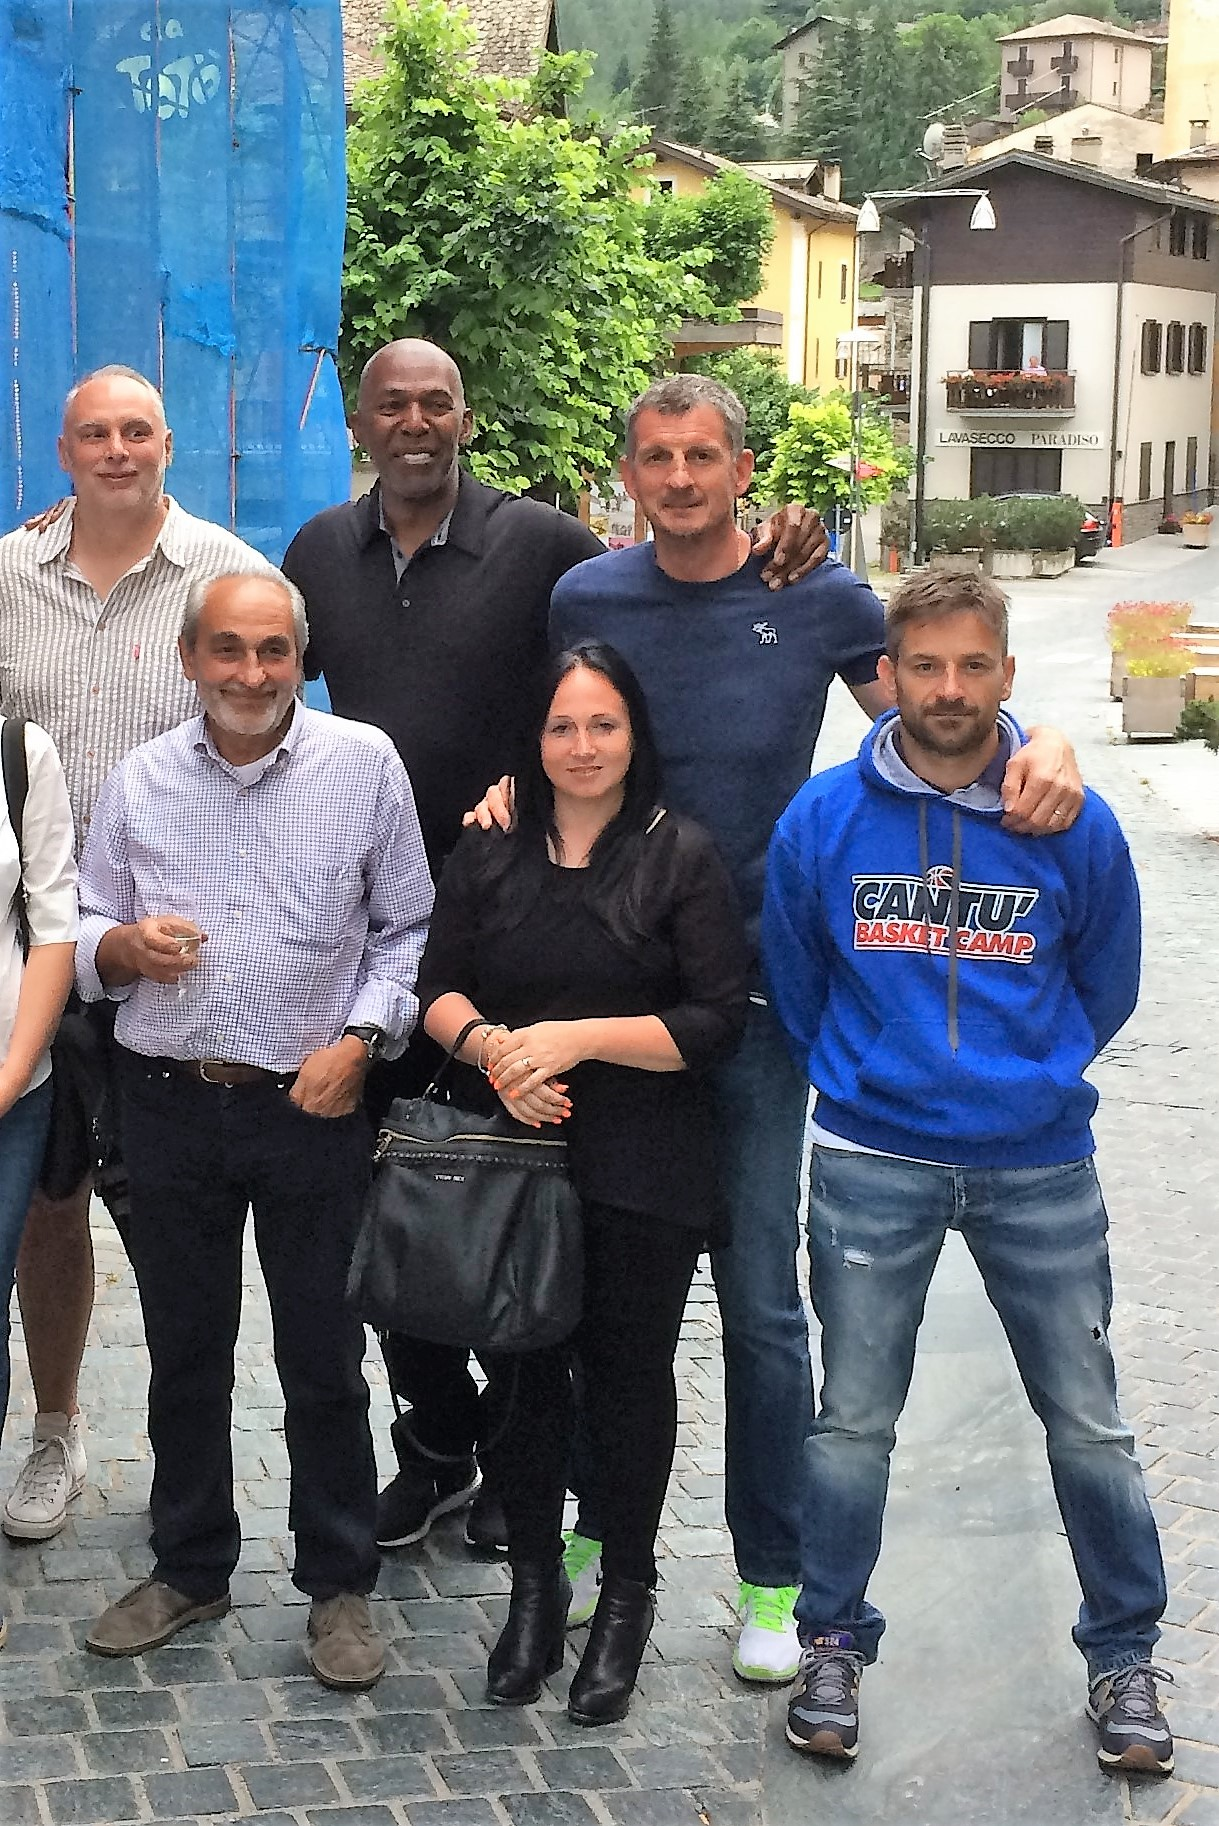 Thurl Bailey porta l'NBA in Valmalenco grazie al 18° Cantù Basket Camp